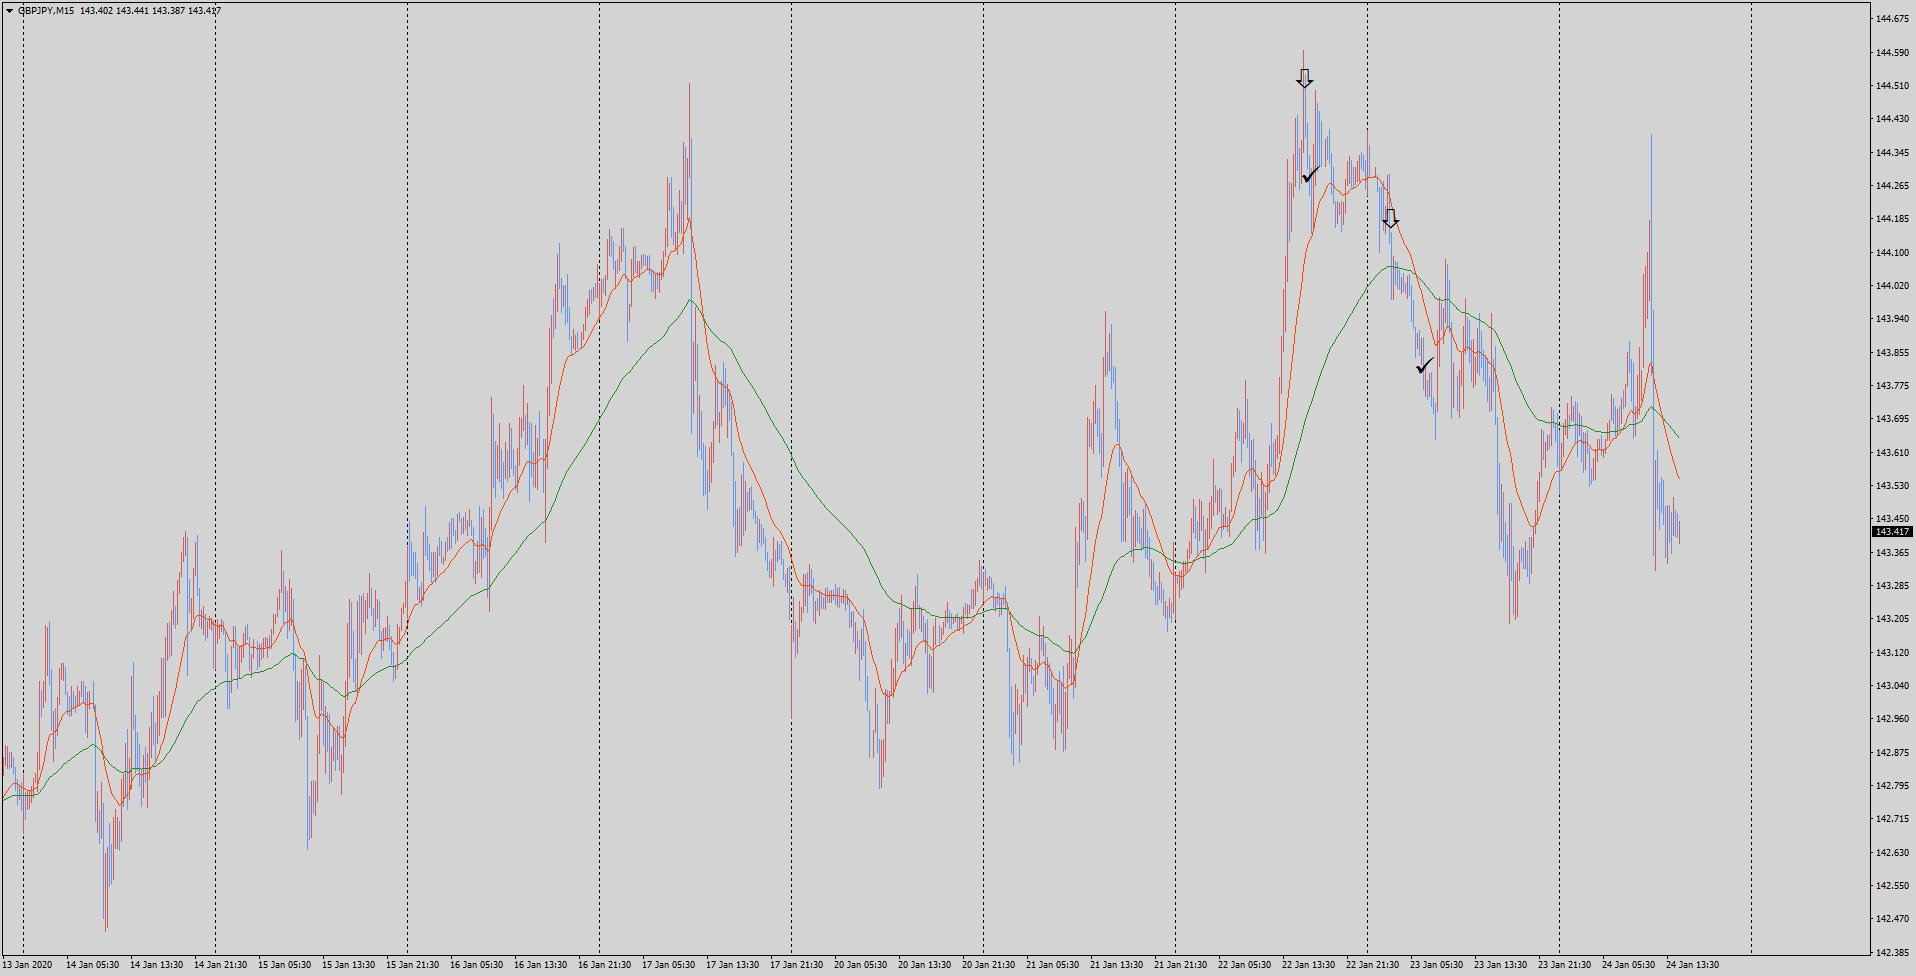 j gbpjpy-m15-tradexfin-limited-2